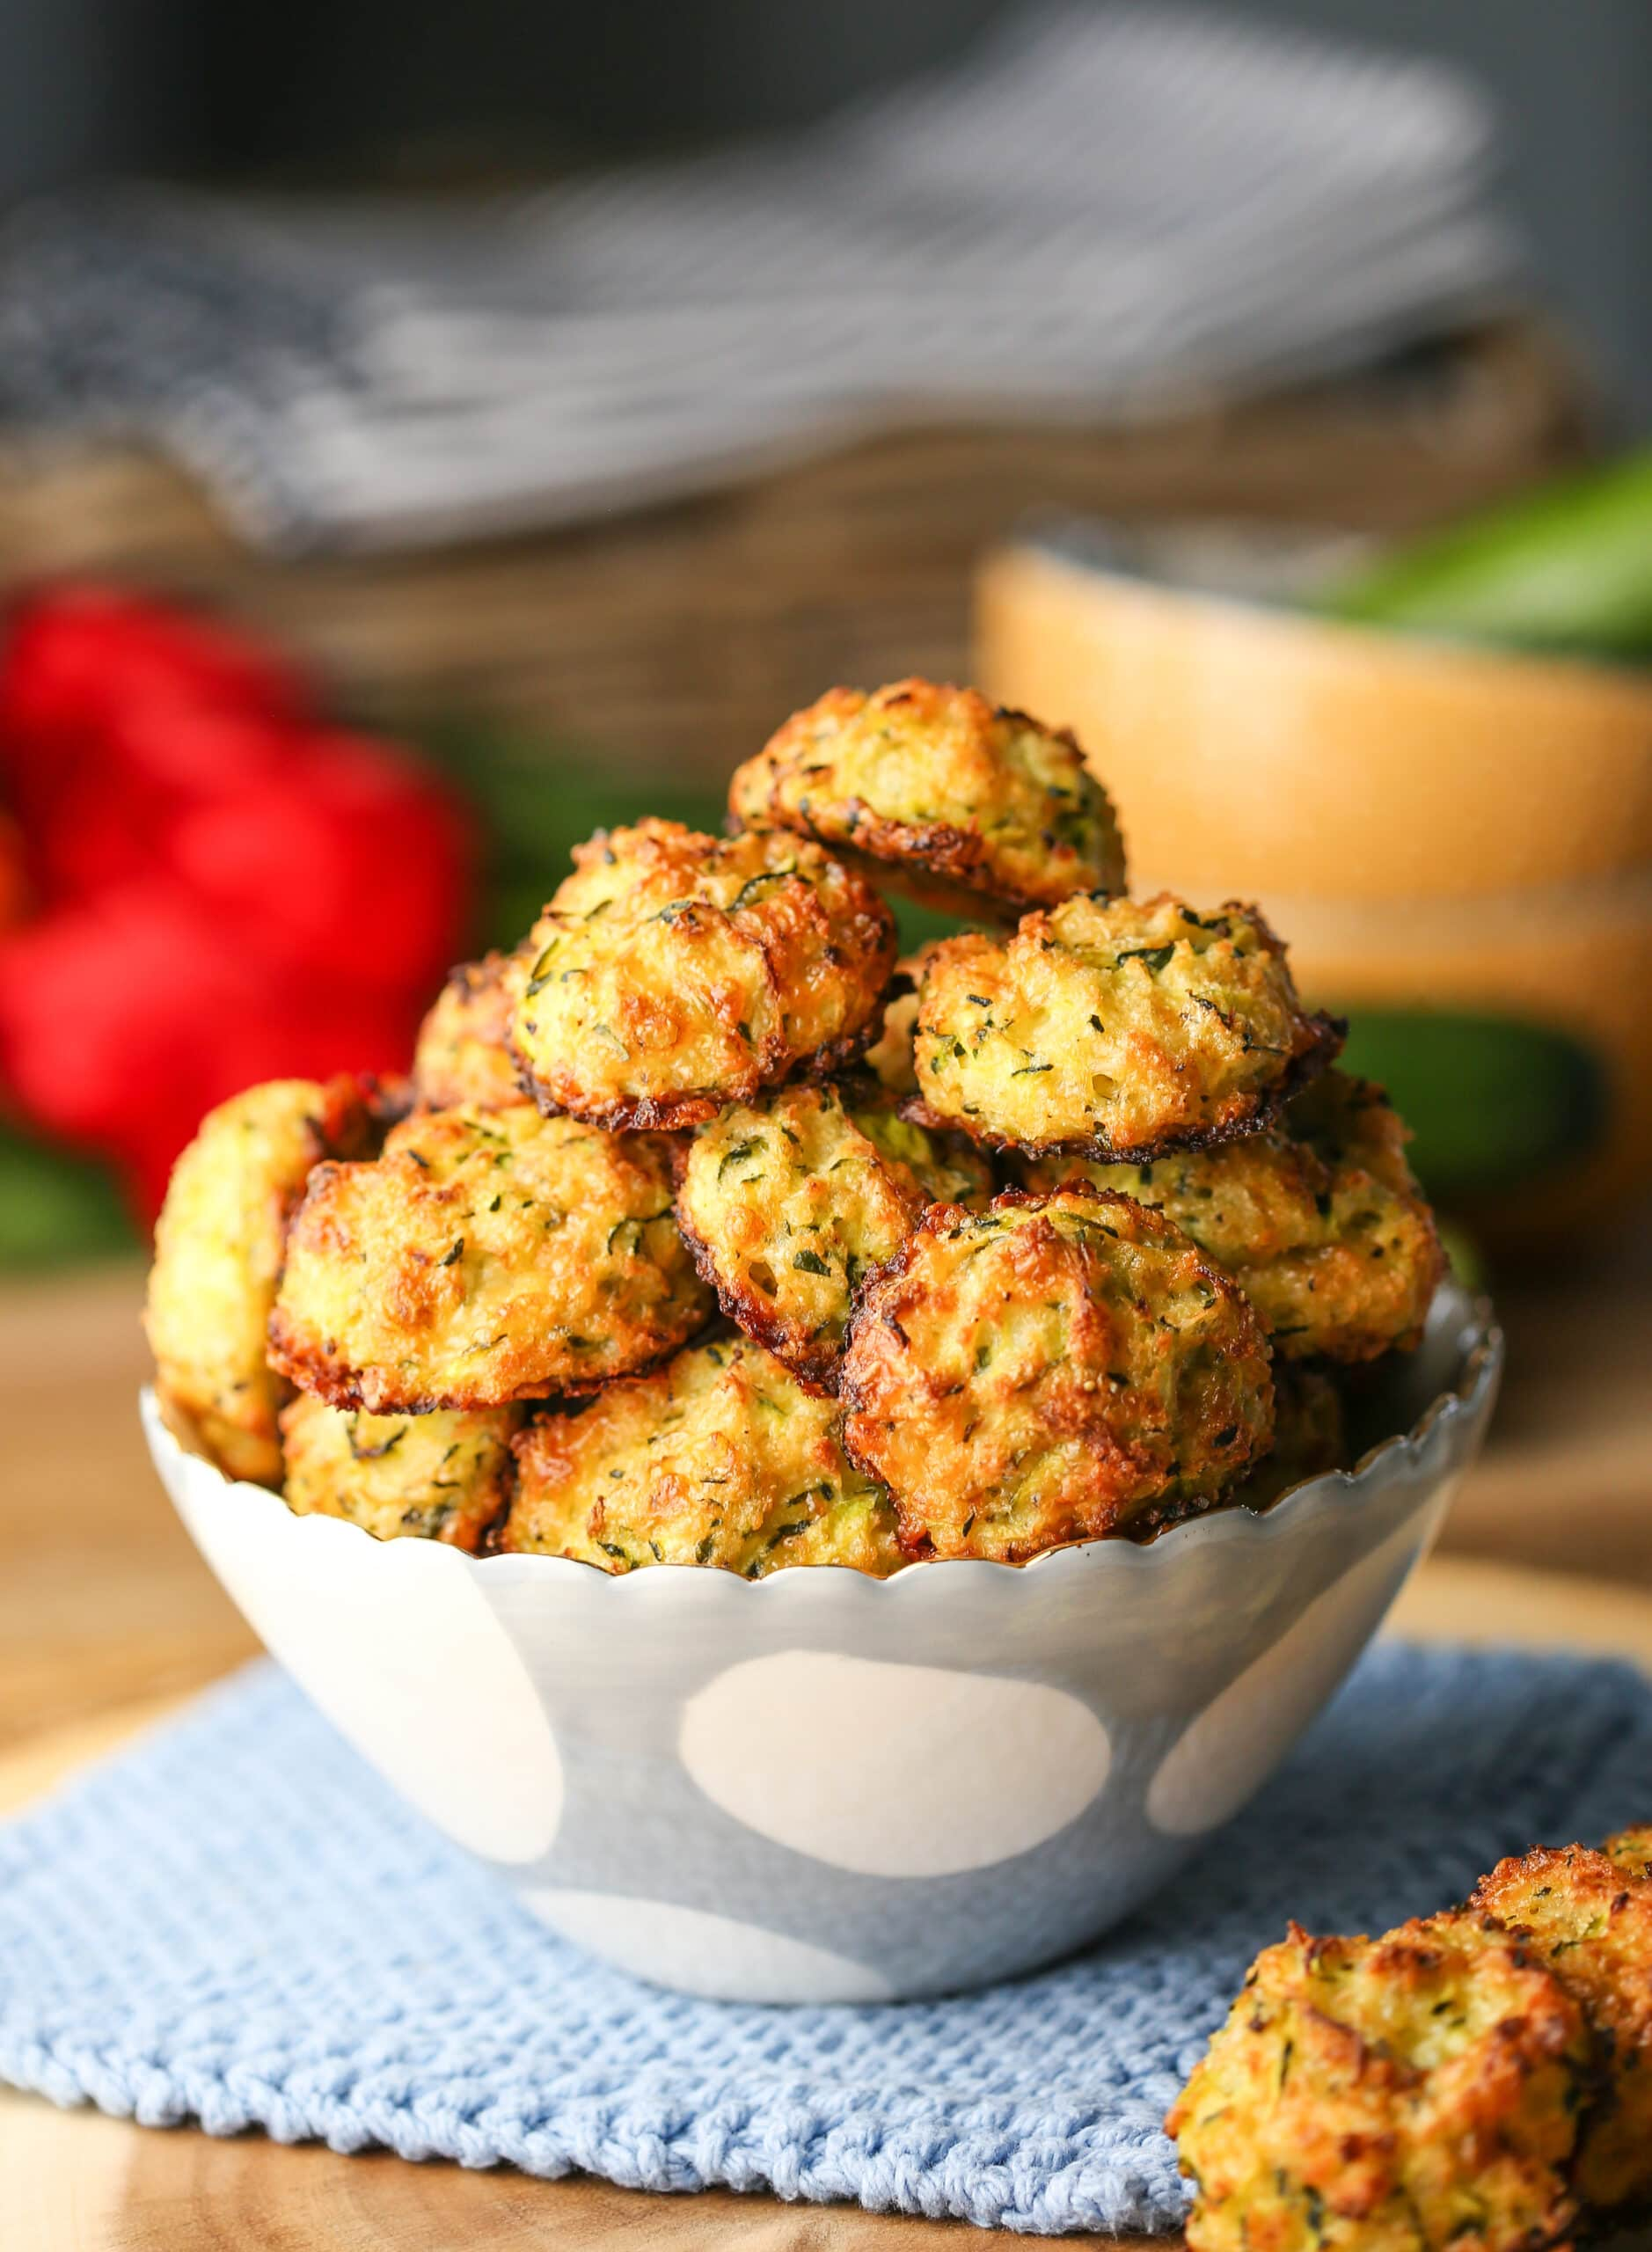 Golden-brown baked cheesy zucchini bites in a white and blue bowl.